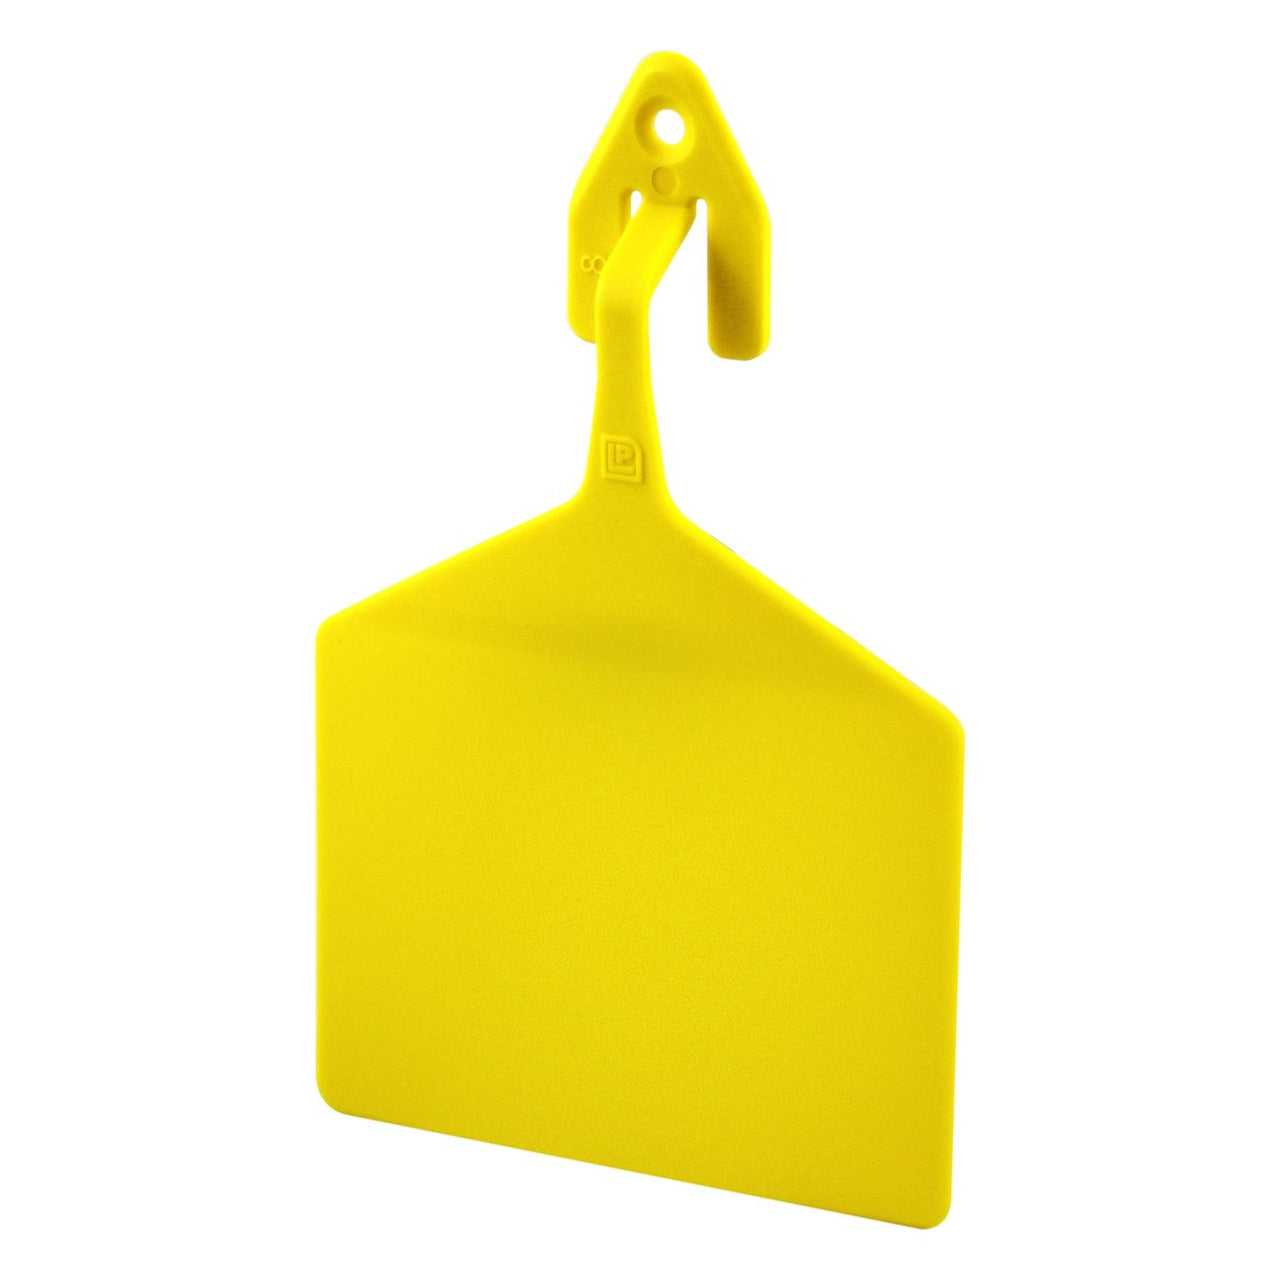 Leader Feedlot 1-1000 (Yellow) - Ear Tags Leader Products - Canada